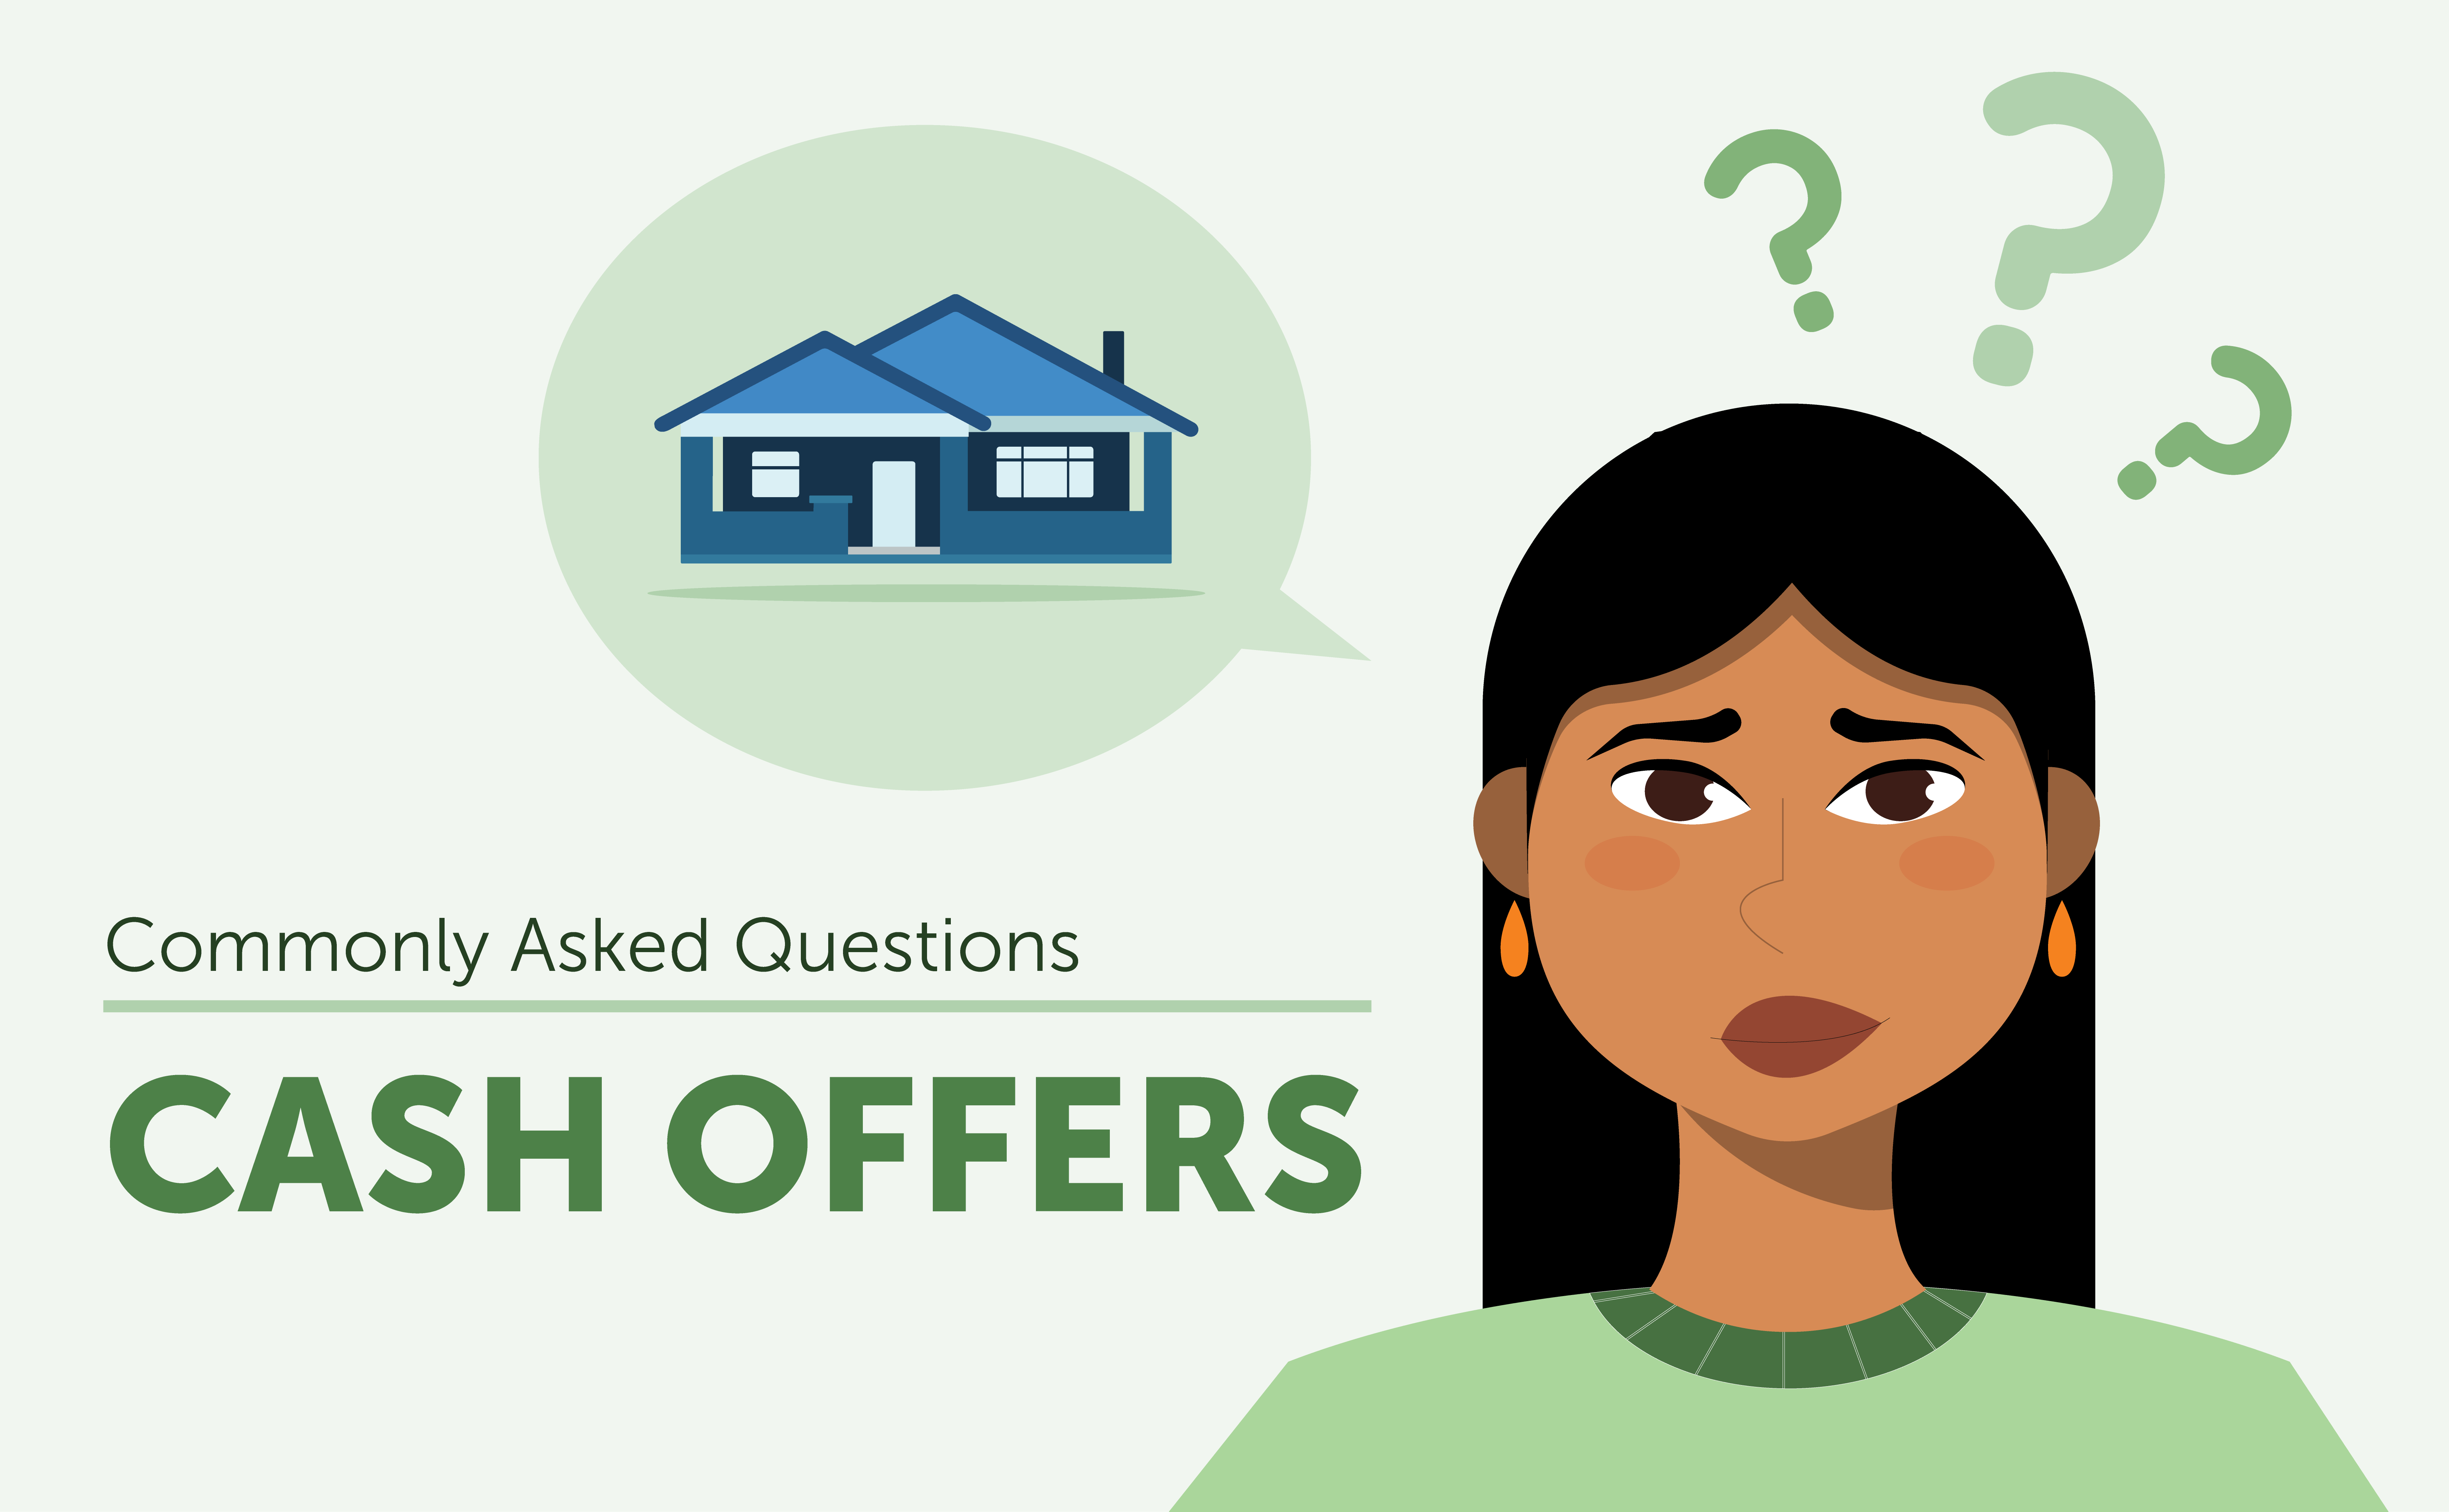 Commonly Asked Questions About Preapprovals and Cash Offers